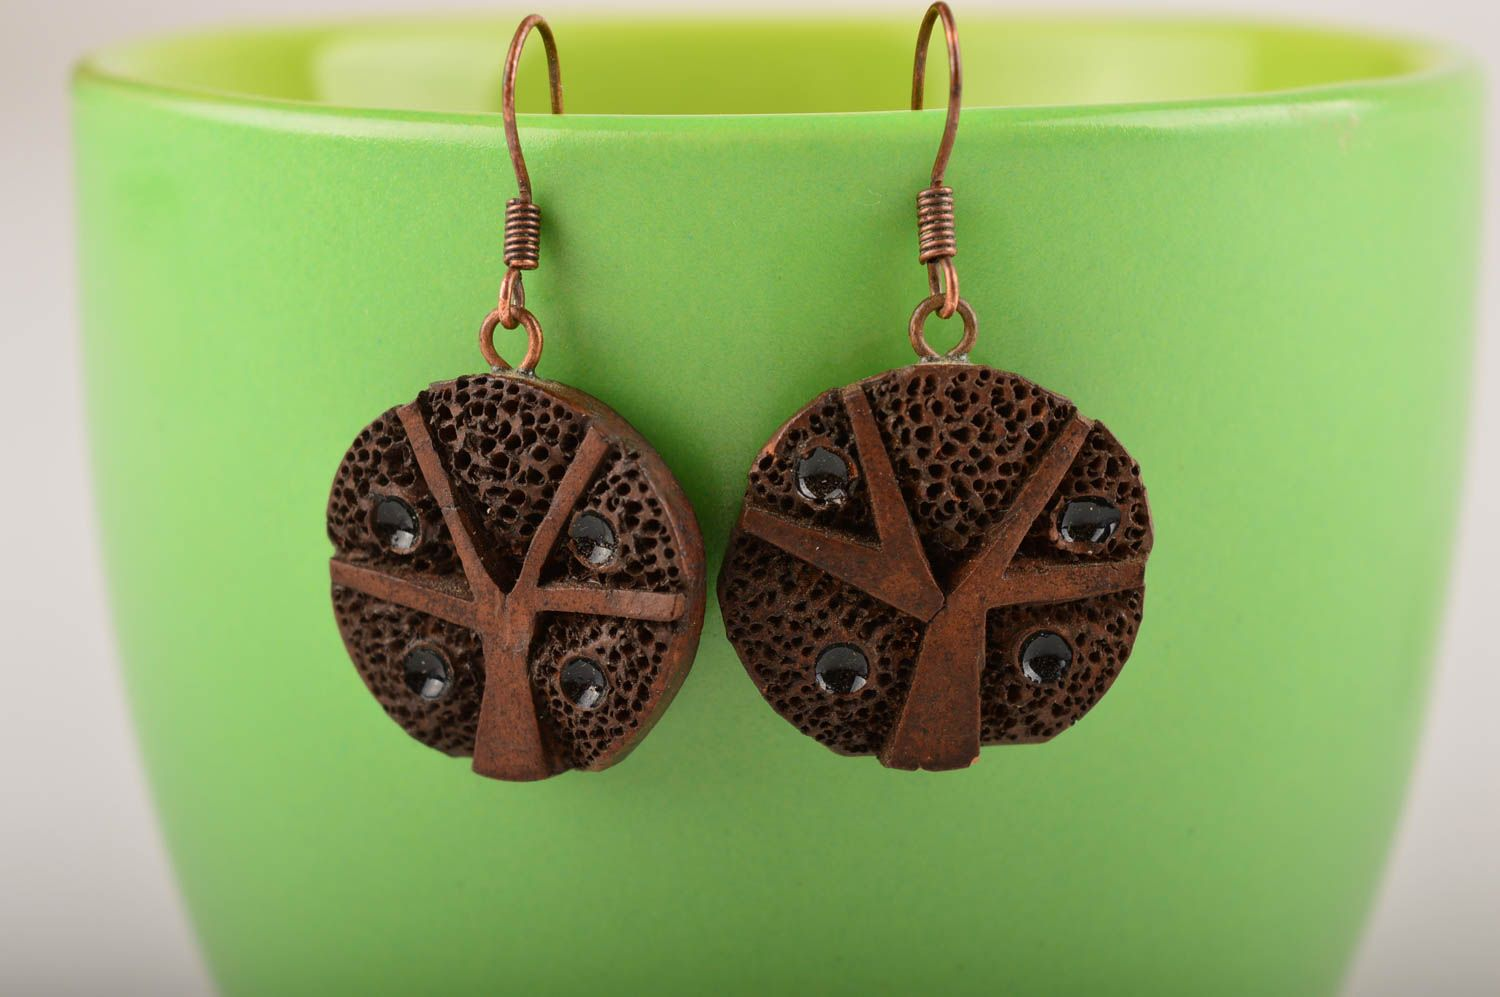 Ceramic jewelry handmade earrings gifts for women fashion accessories photo 4